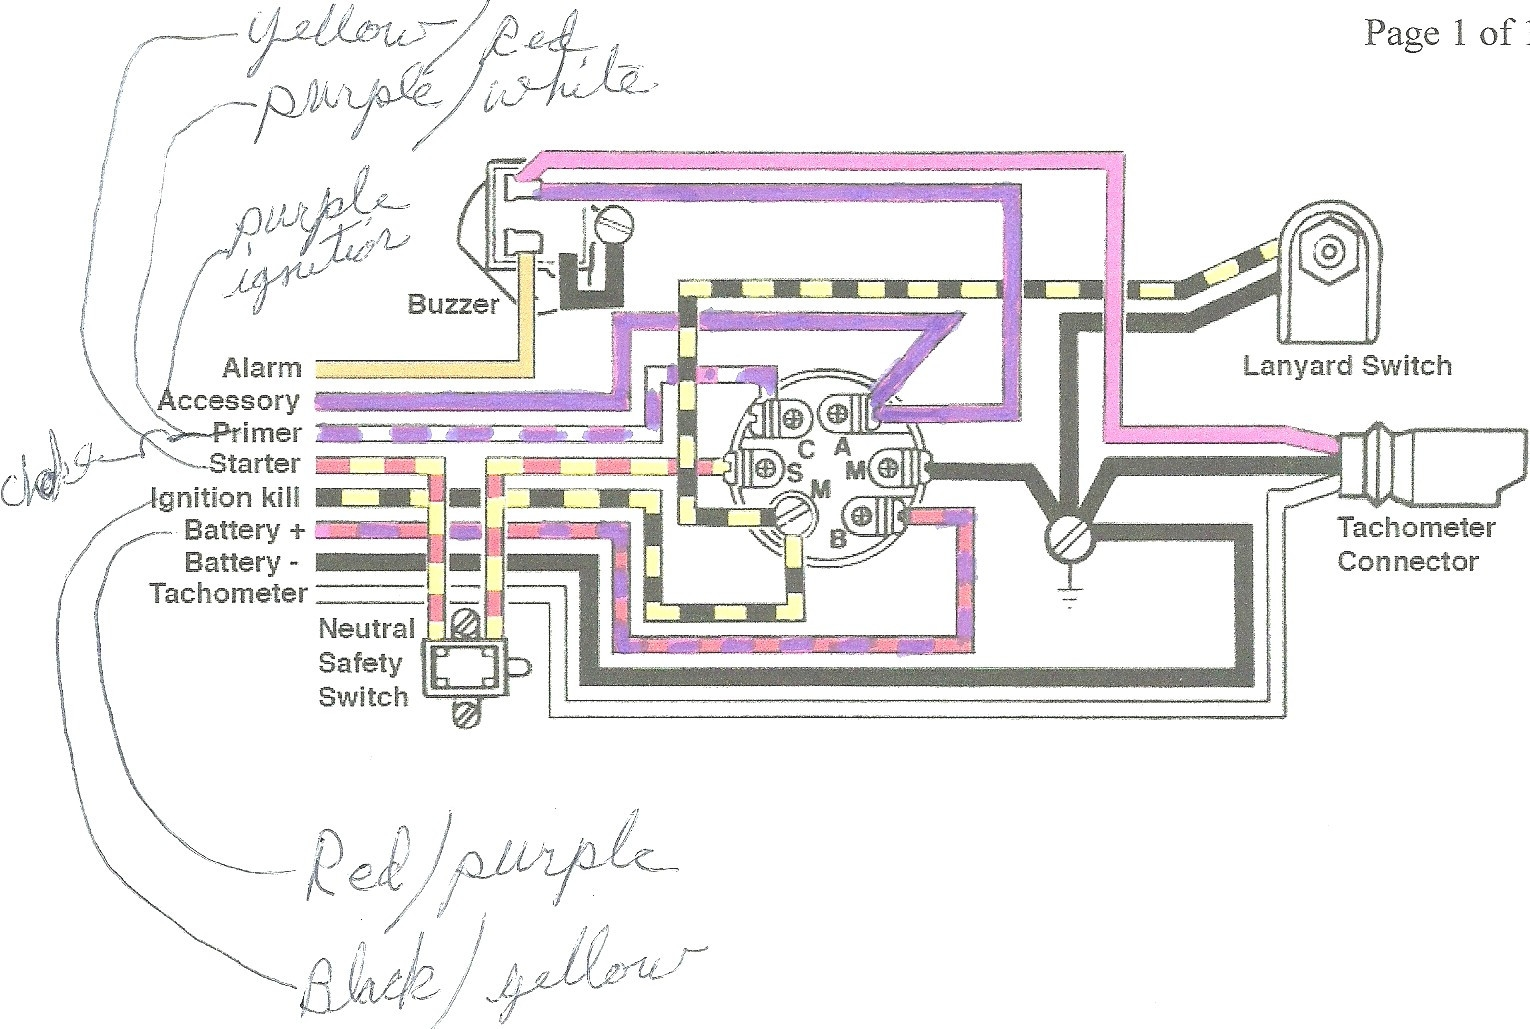 1974 Mercury Outboard Ignition Switch Wiring Diagram Wiring Diagram